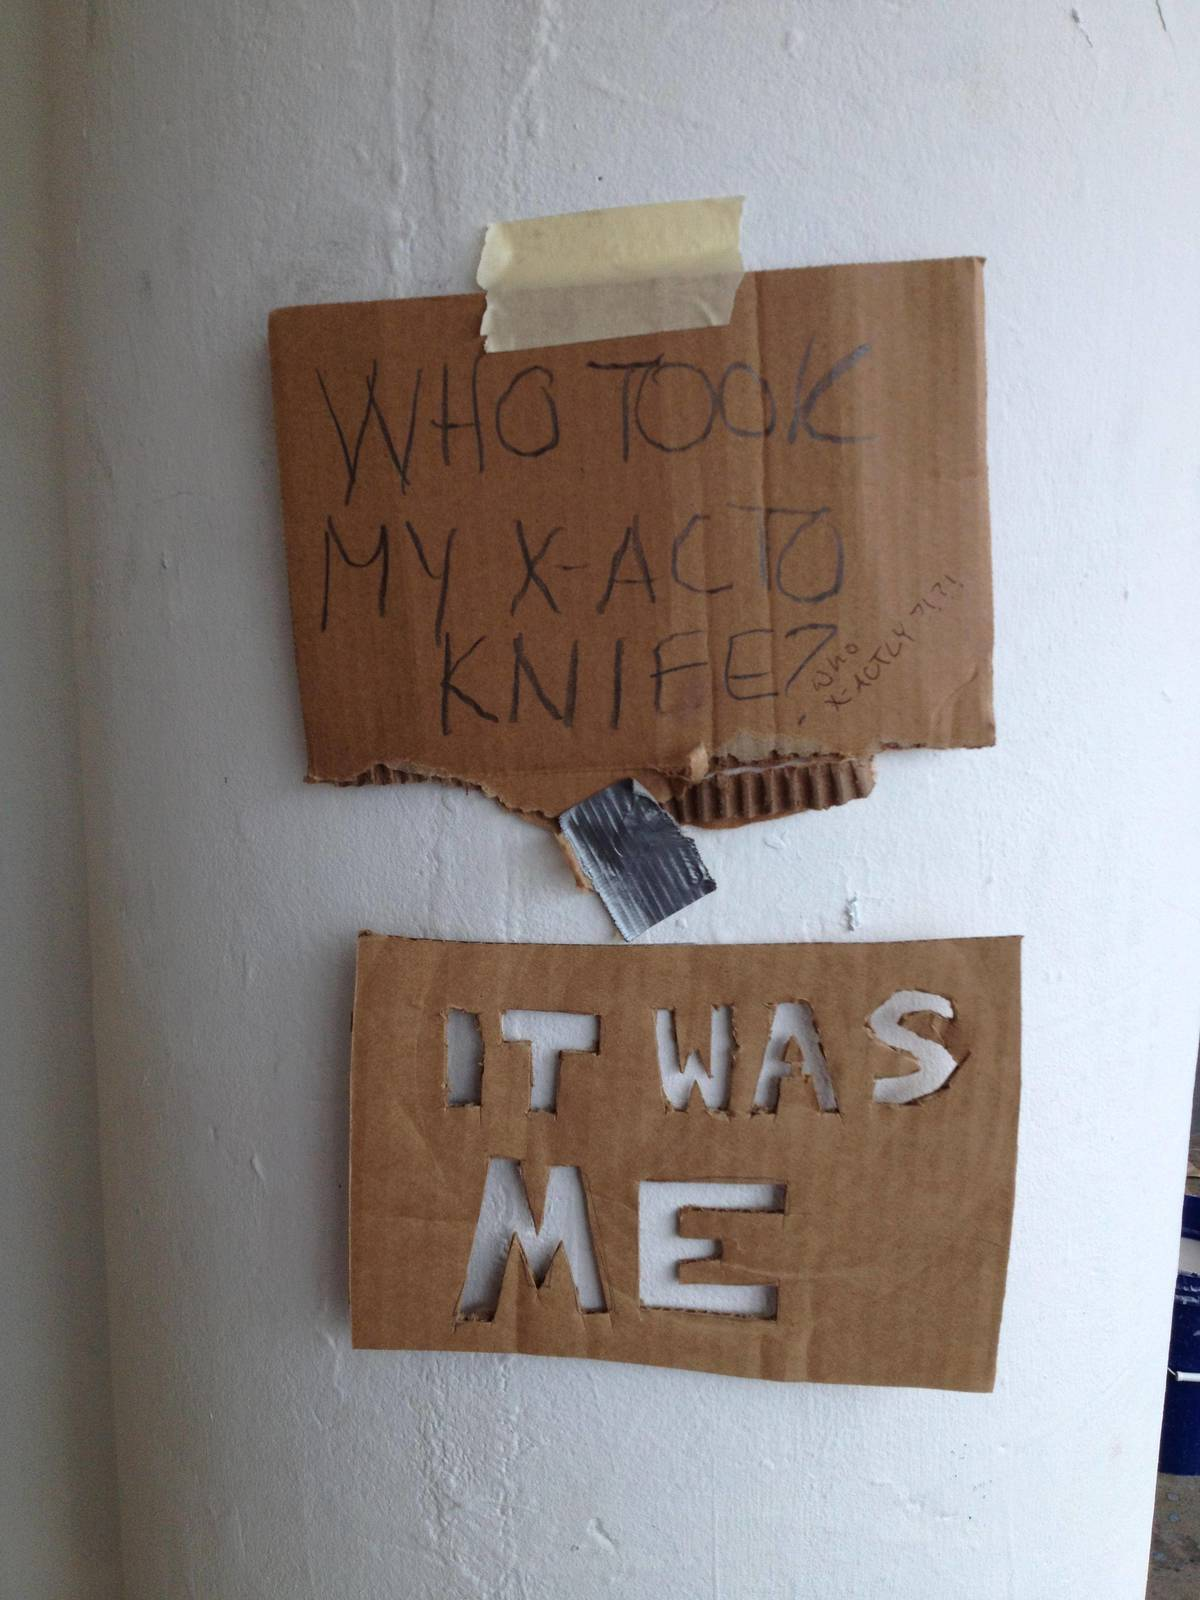 A sign asks for who took someone's X-acto knife, and a carved sign replies